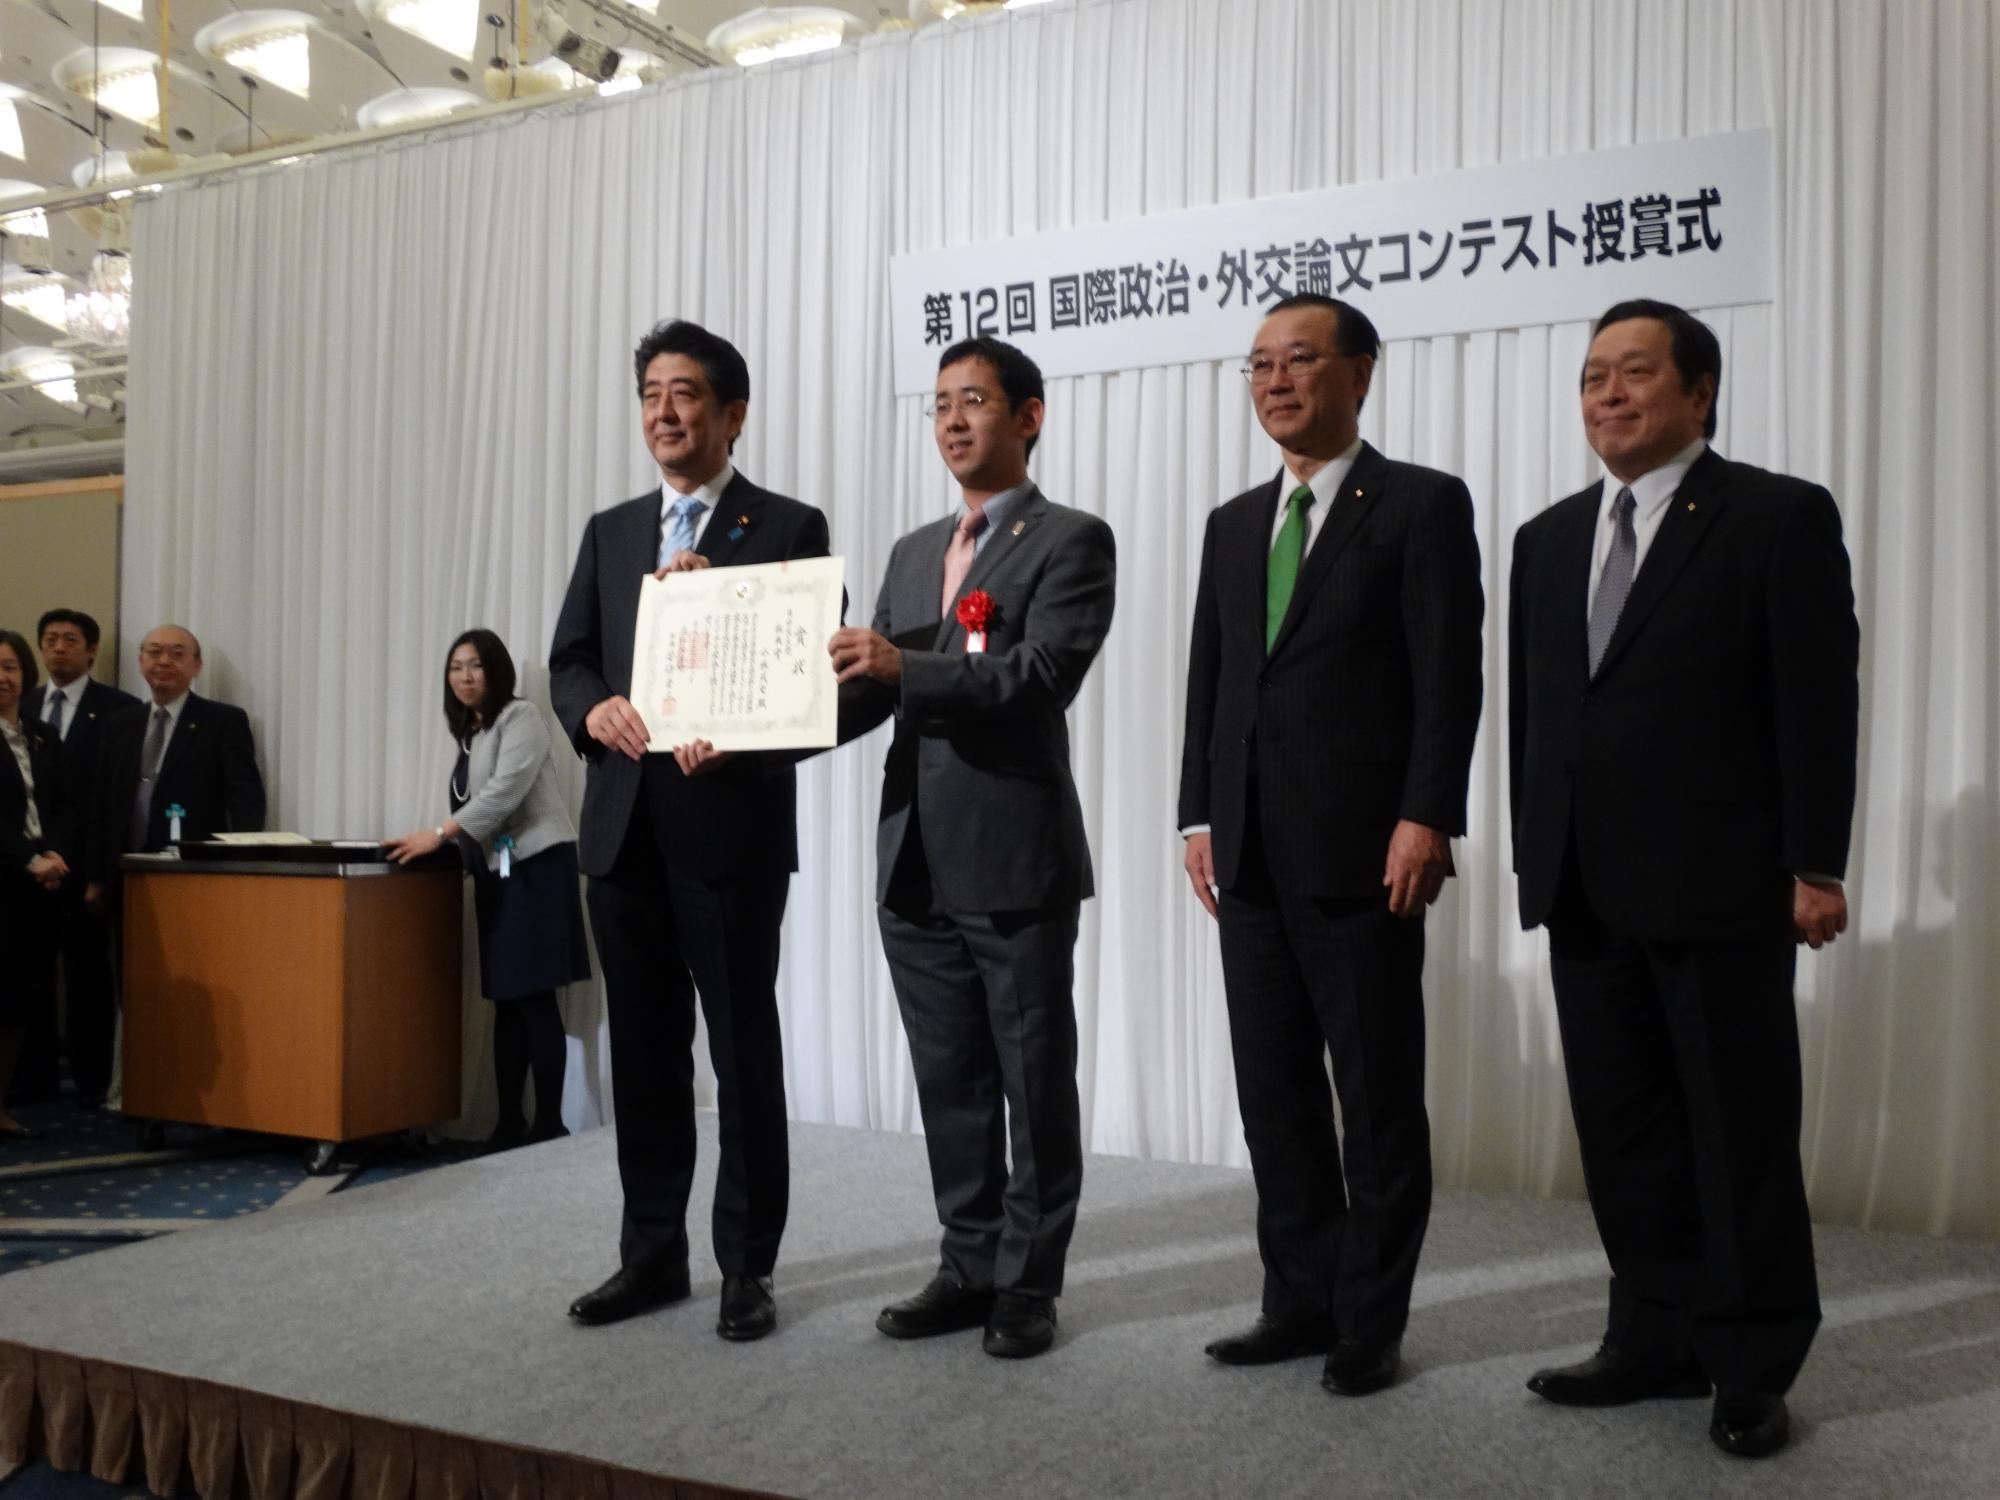 Takeshi Kobayashi awarded by Japanese Prime Minister Shinzō Abe in March for his essay on international relations